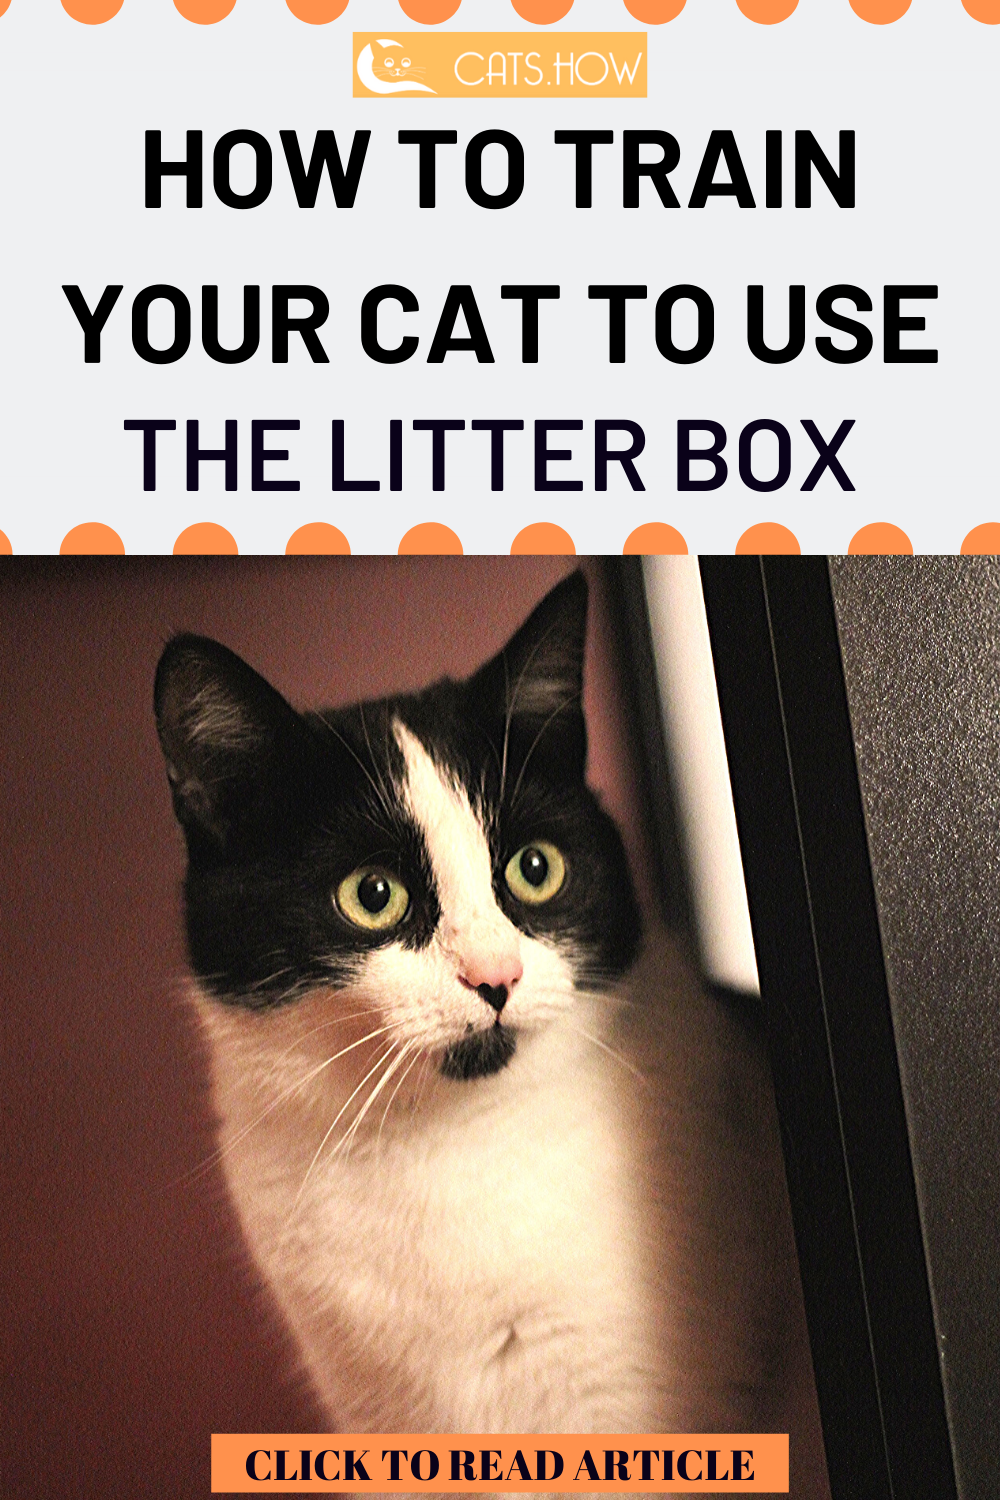 How To Train Your Cat To Use The Litter Box Litter Box Cat Behavior Cats